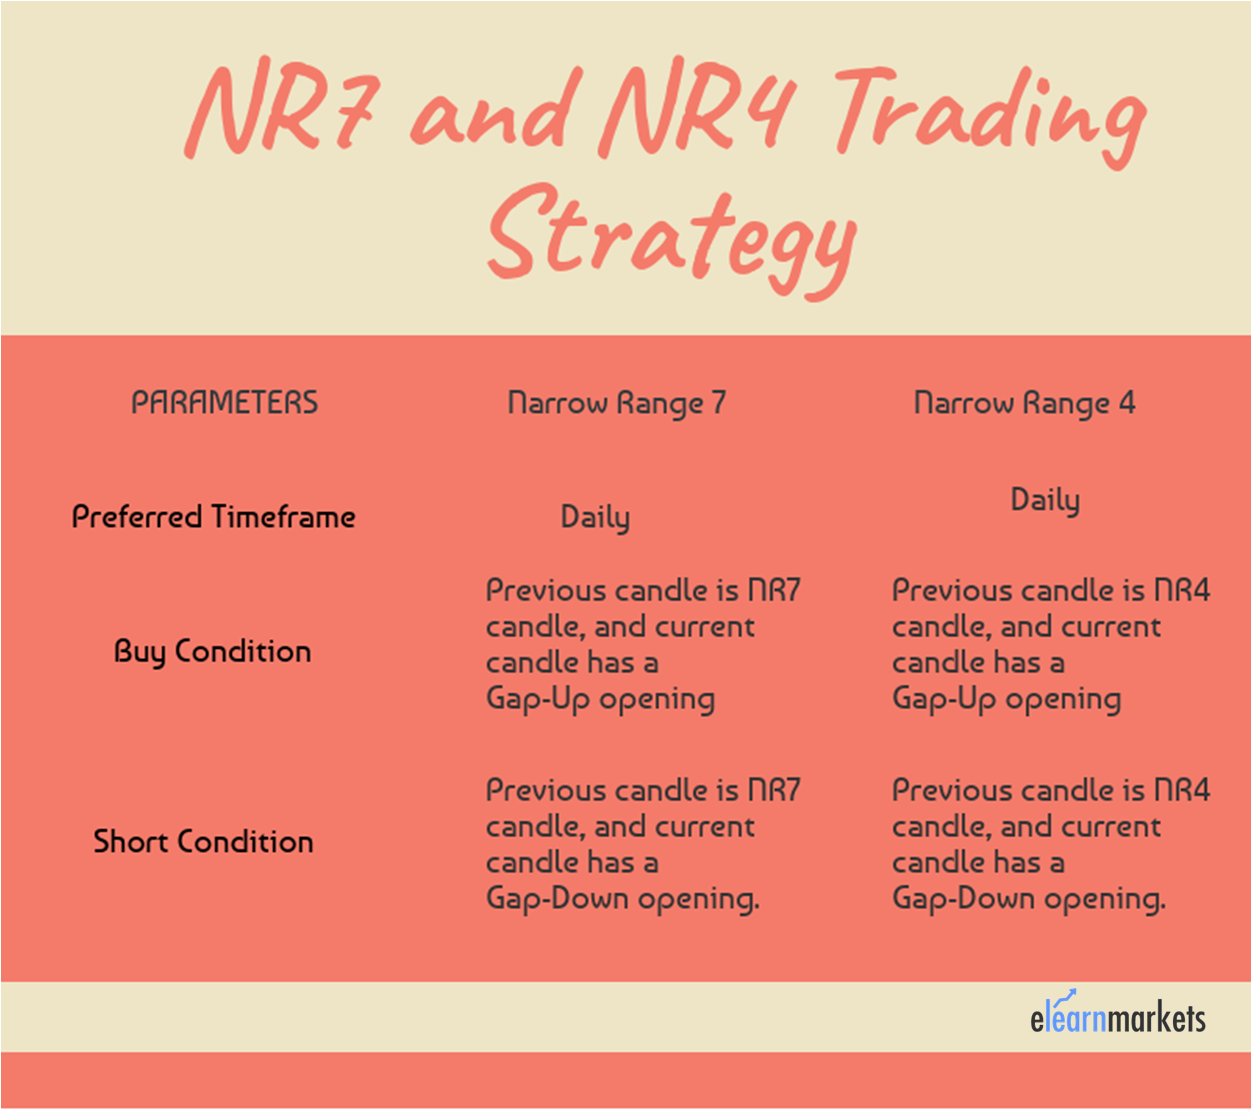 NR4 and NR7 Trading Strategy Setup